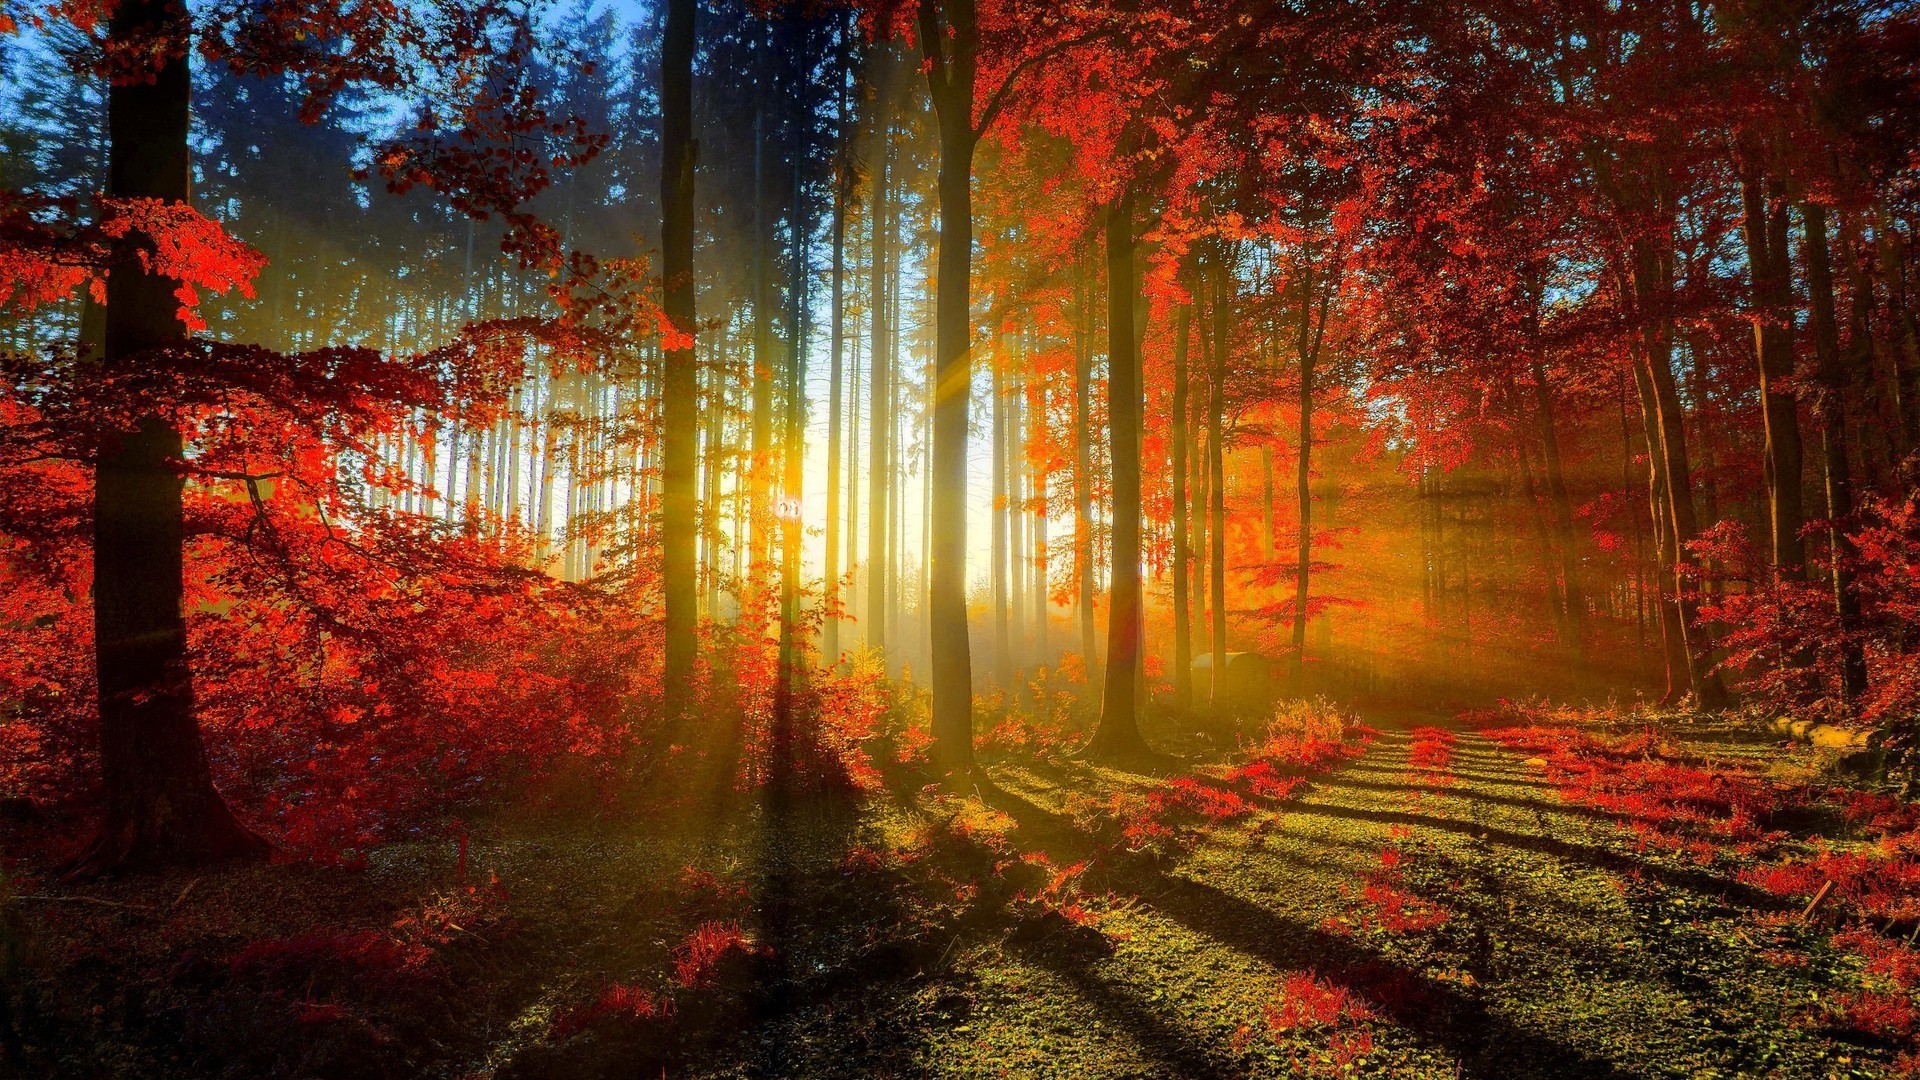 … Autumn trees and walking path wallpaper from PicsWalls …